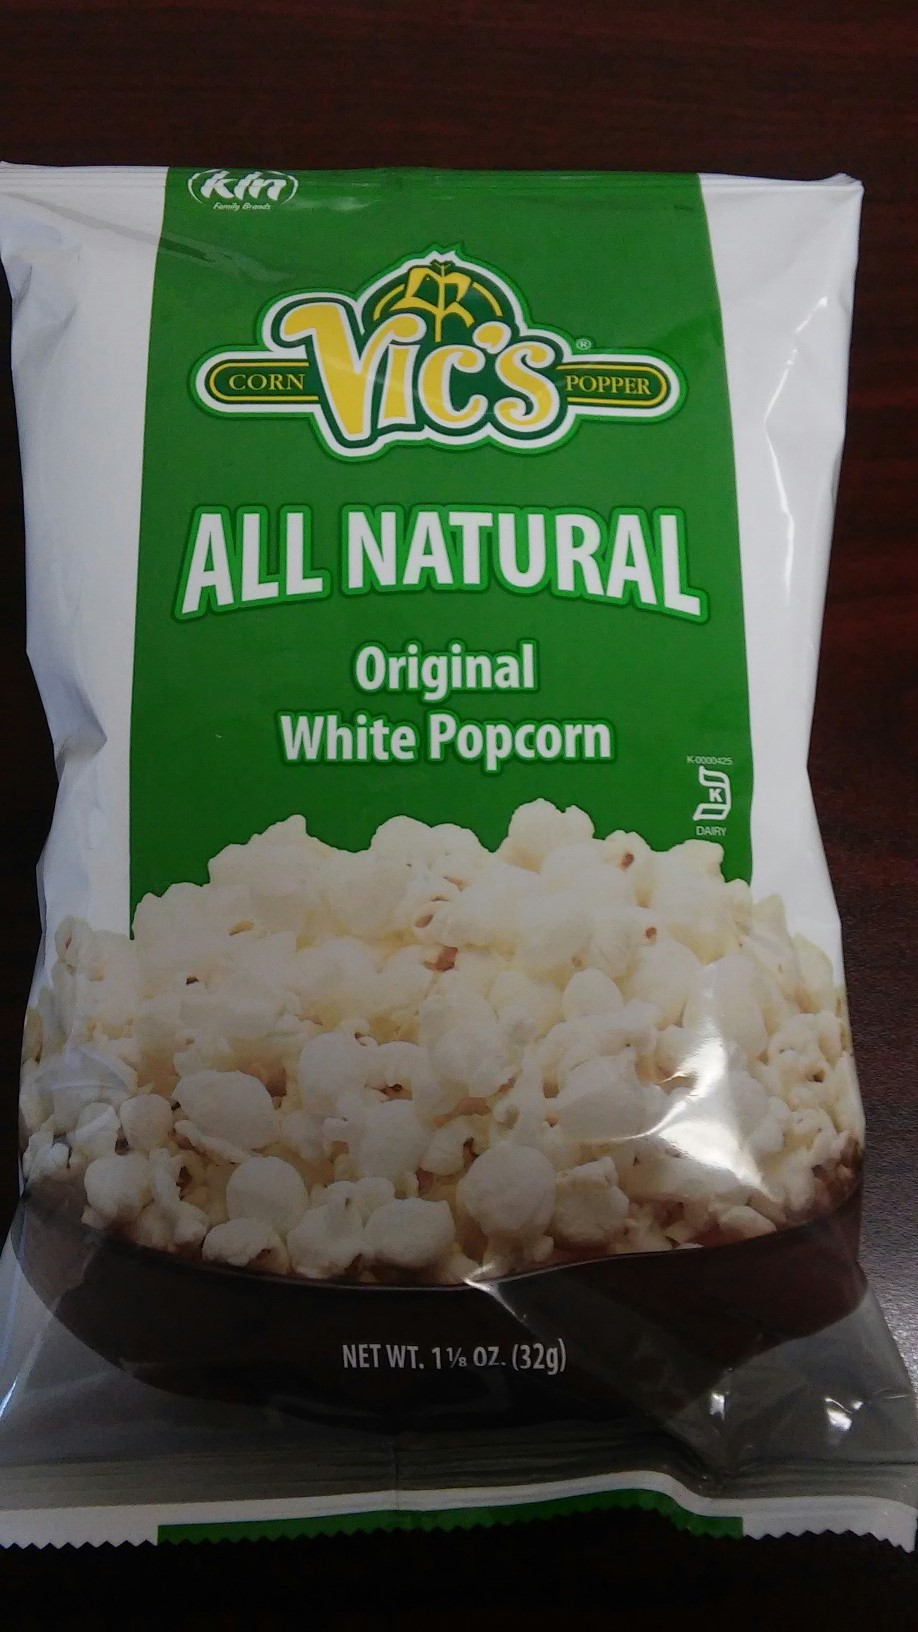 Barrel O' Fun Snack Foods Co. Issues Allergy Alert On Undeclared Milk In Vic's Original Popcorn (1-1/8oz)